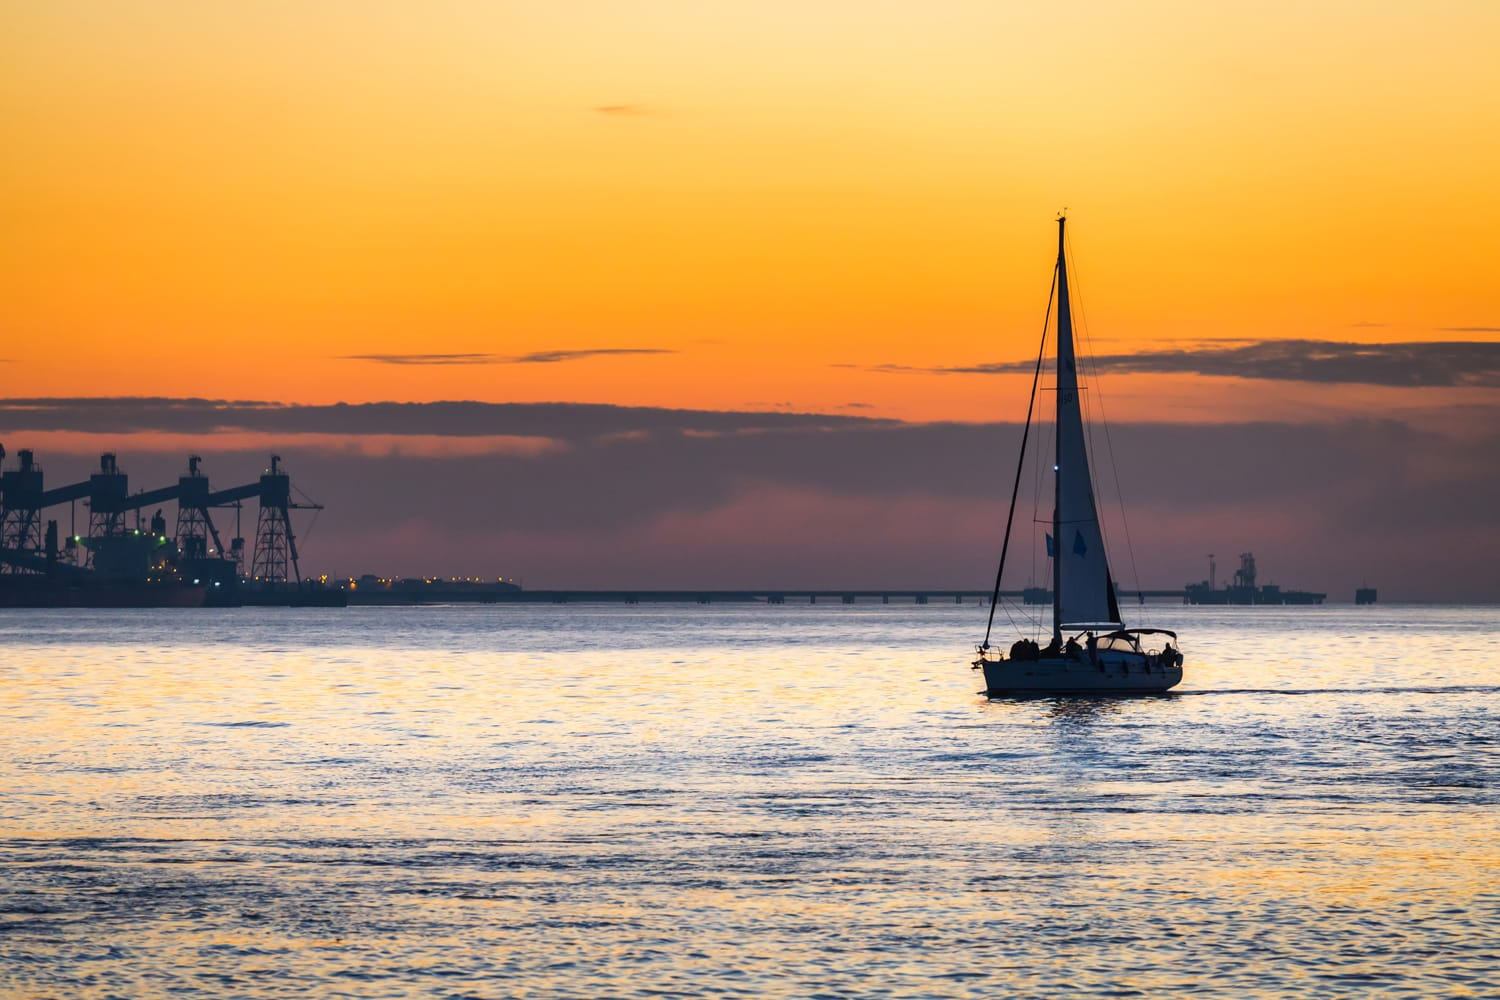 Luxury yacht Sailing on Tagus river at sunset in Lisbon, Portugal